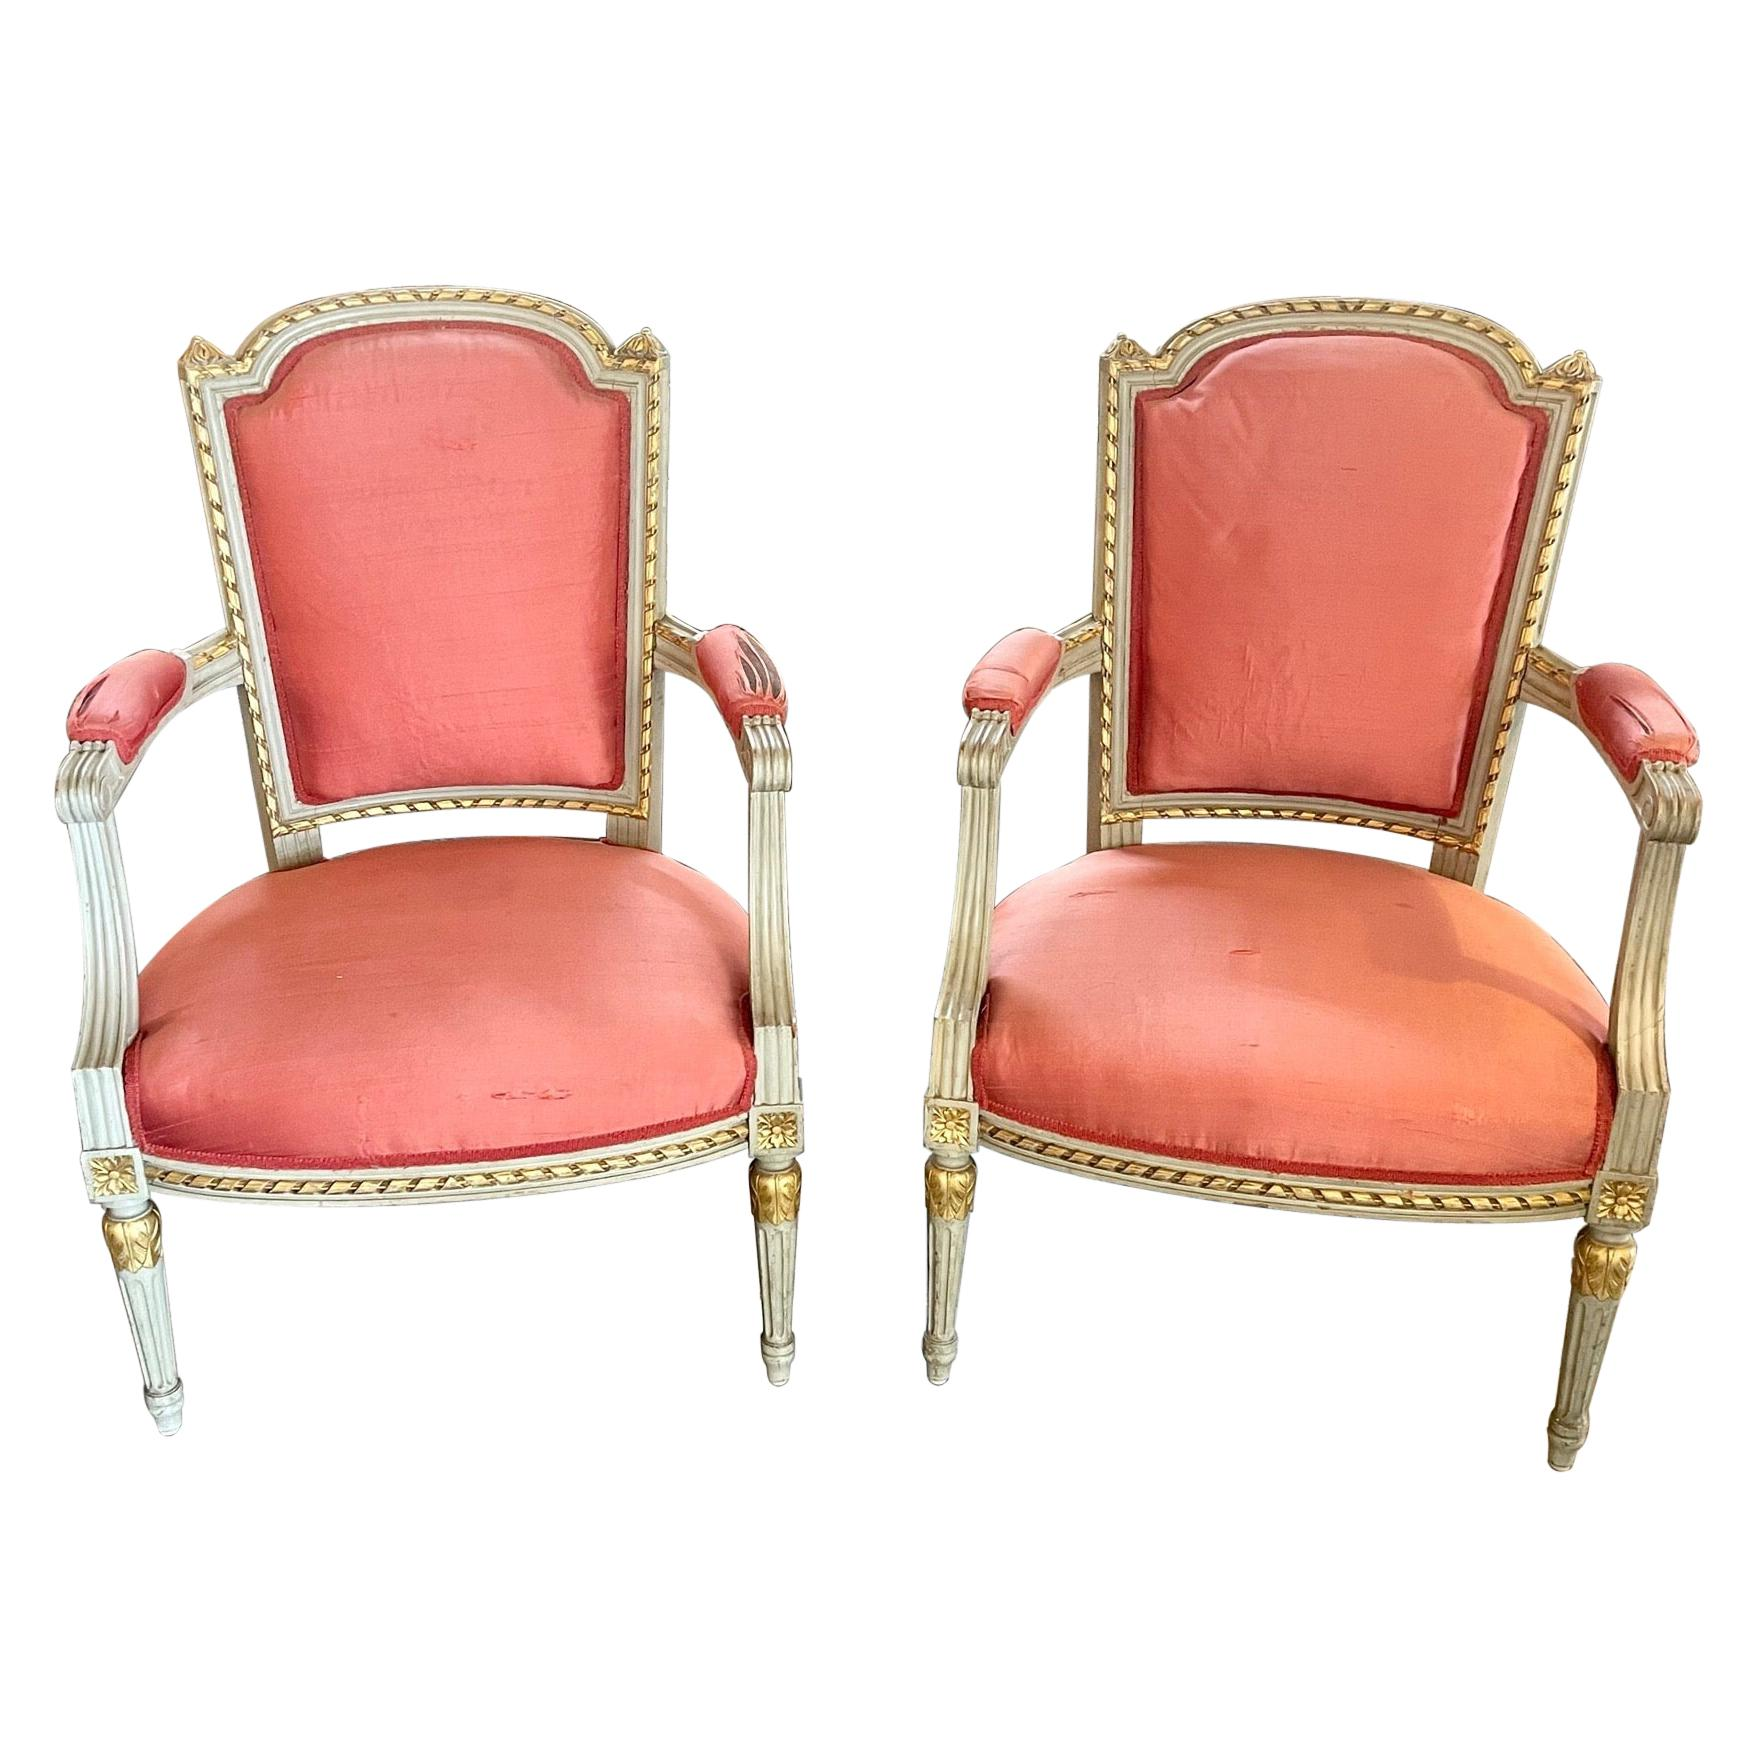 Pair of 19th Century French Louis XVI Carved and Painted Armchairs